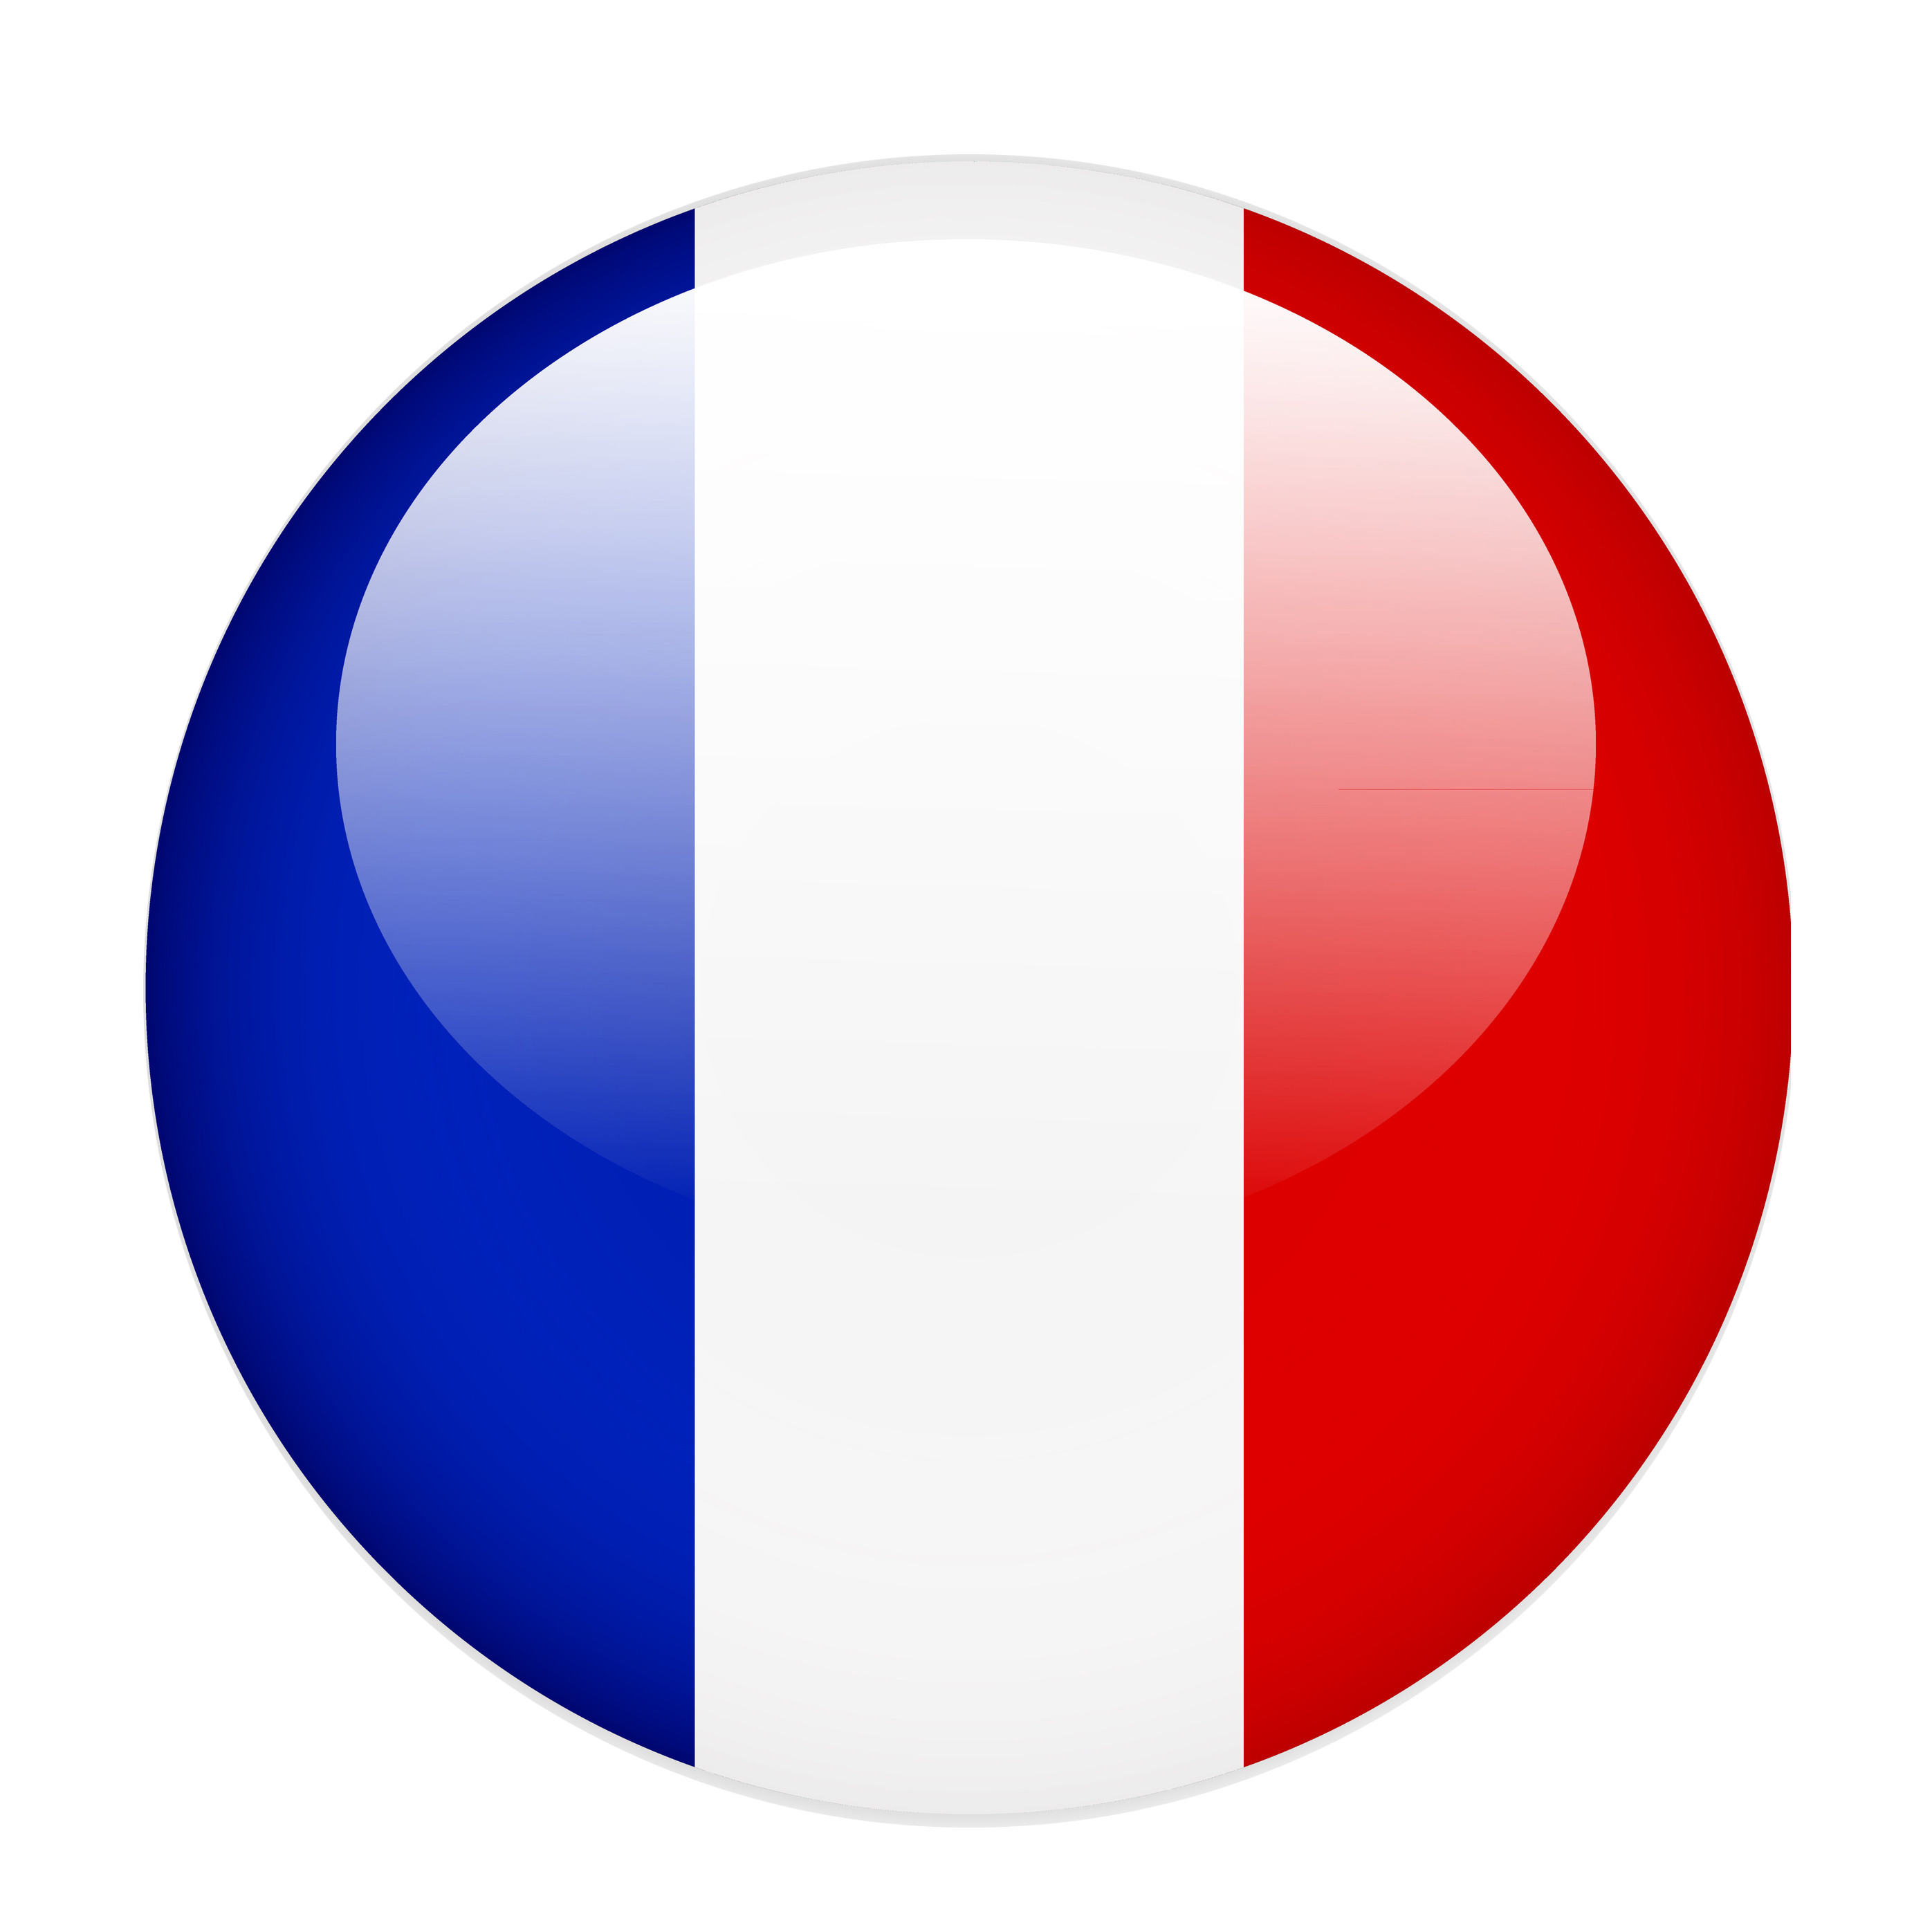 France Flag Themed Lined paper and Pageborders | France flag, Lined paper,  Borders for paper